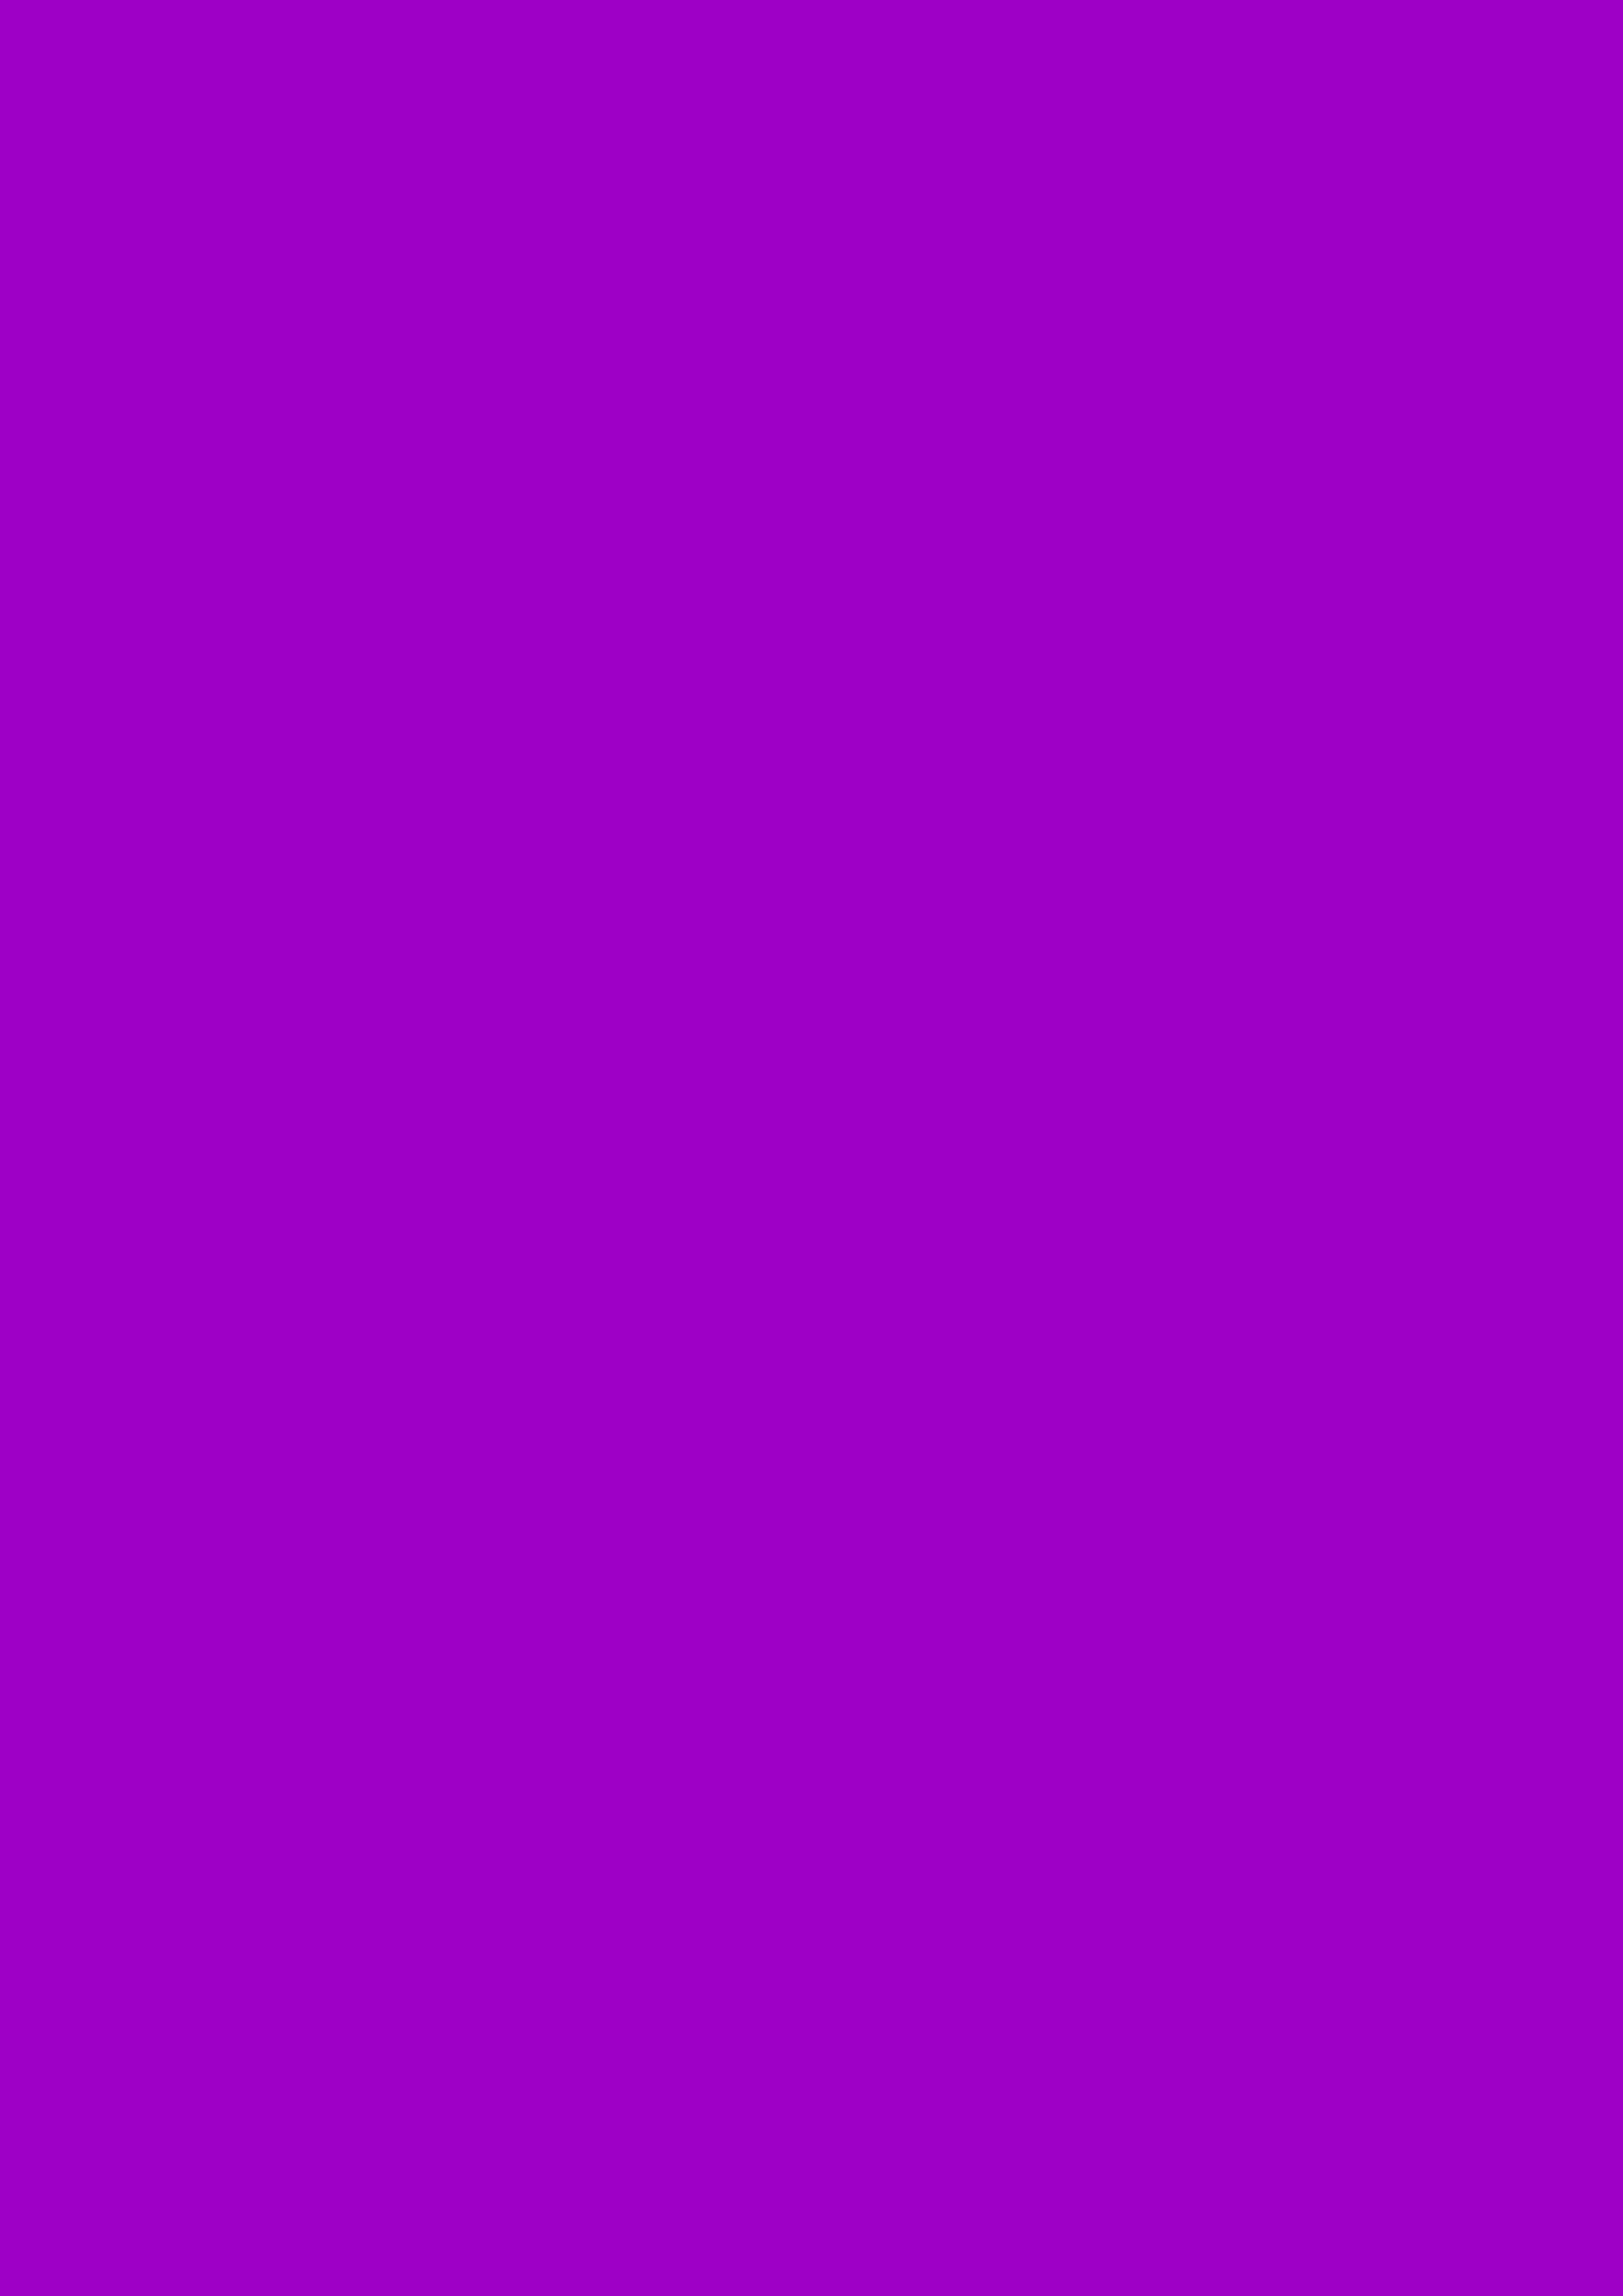 2480x3508 Purple Munsell Solid Color Background